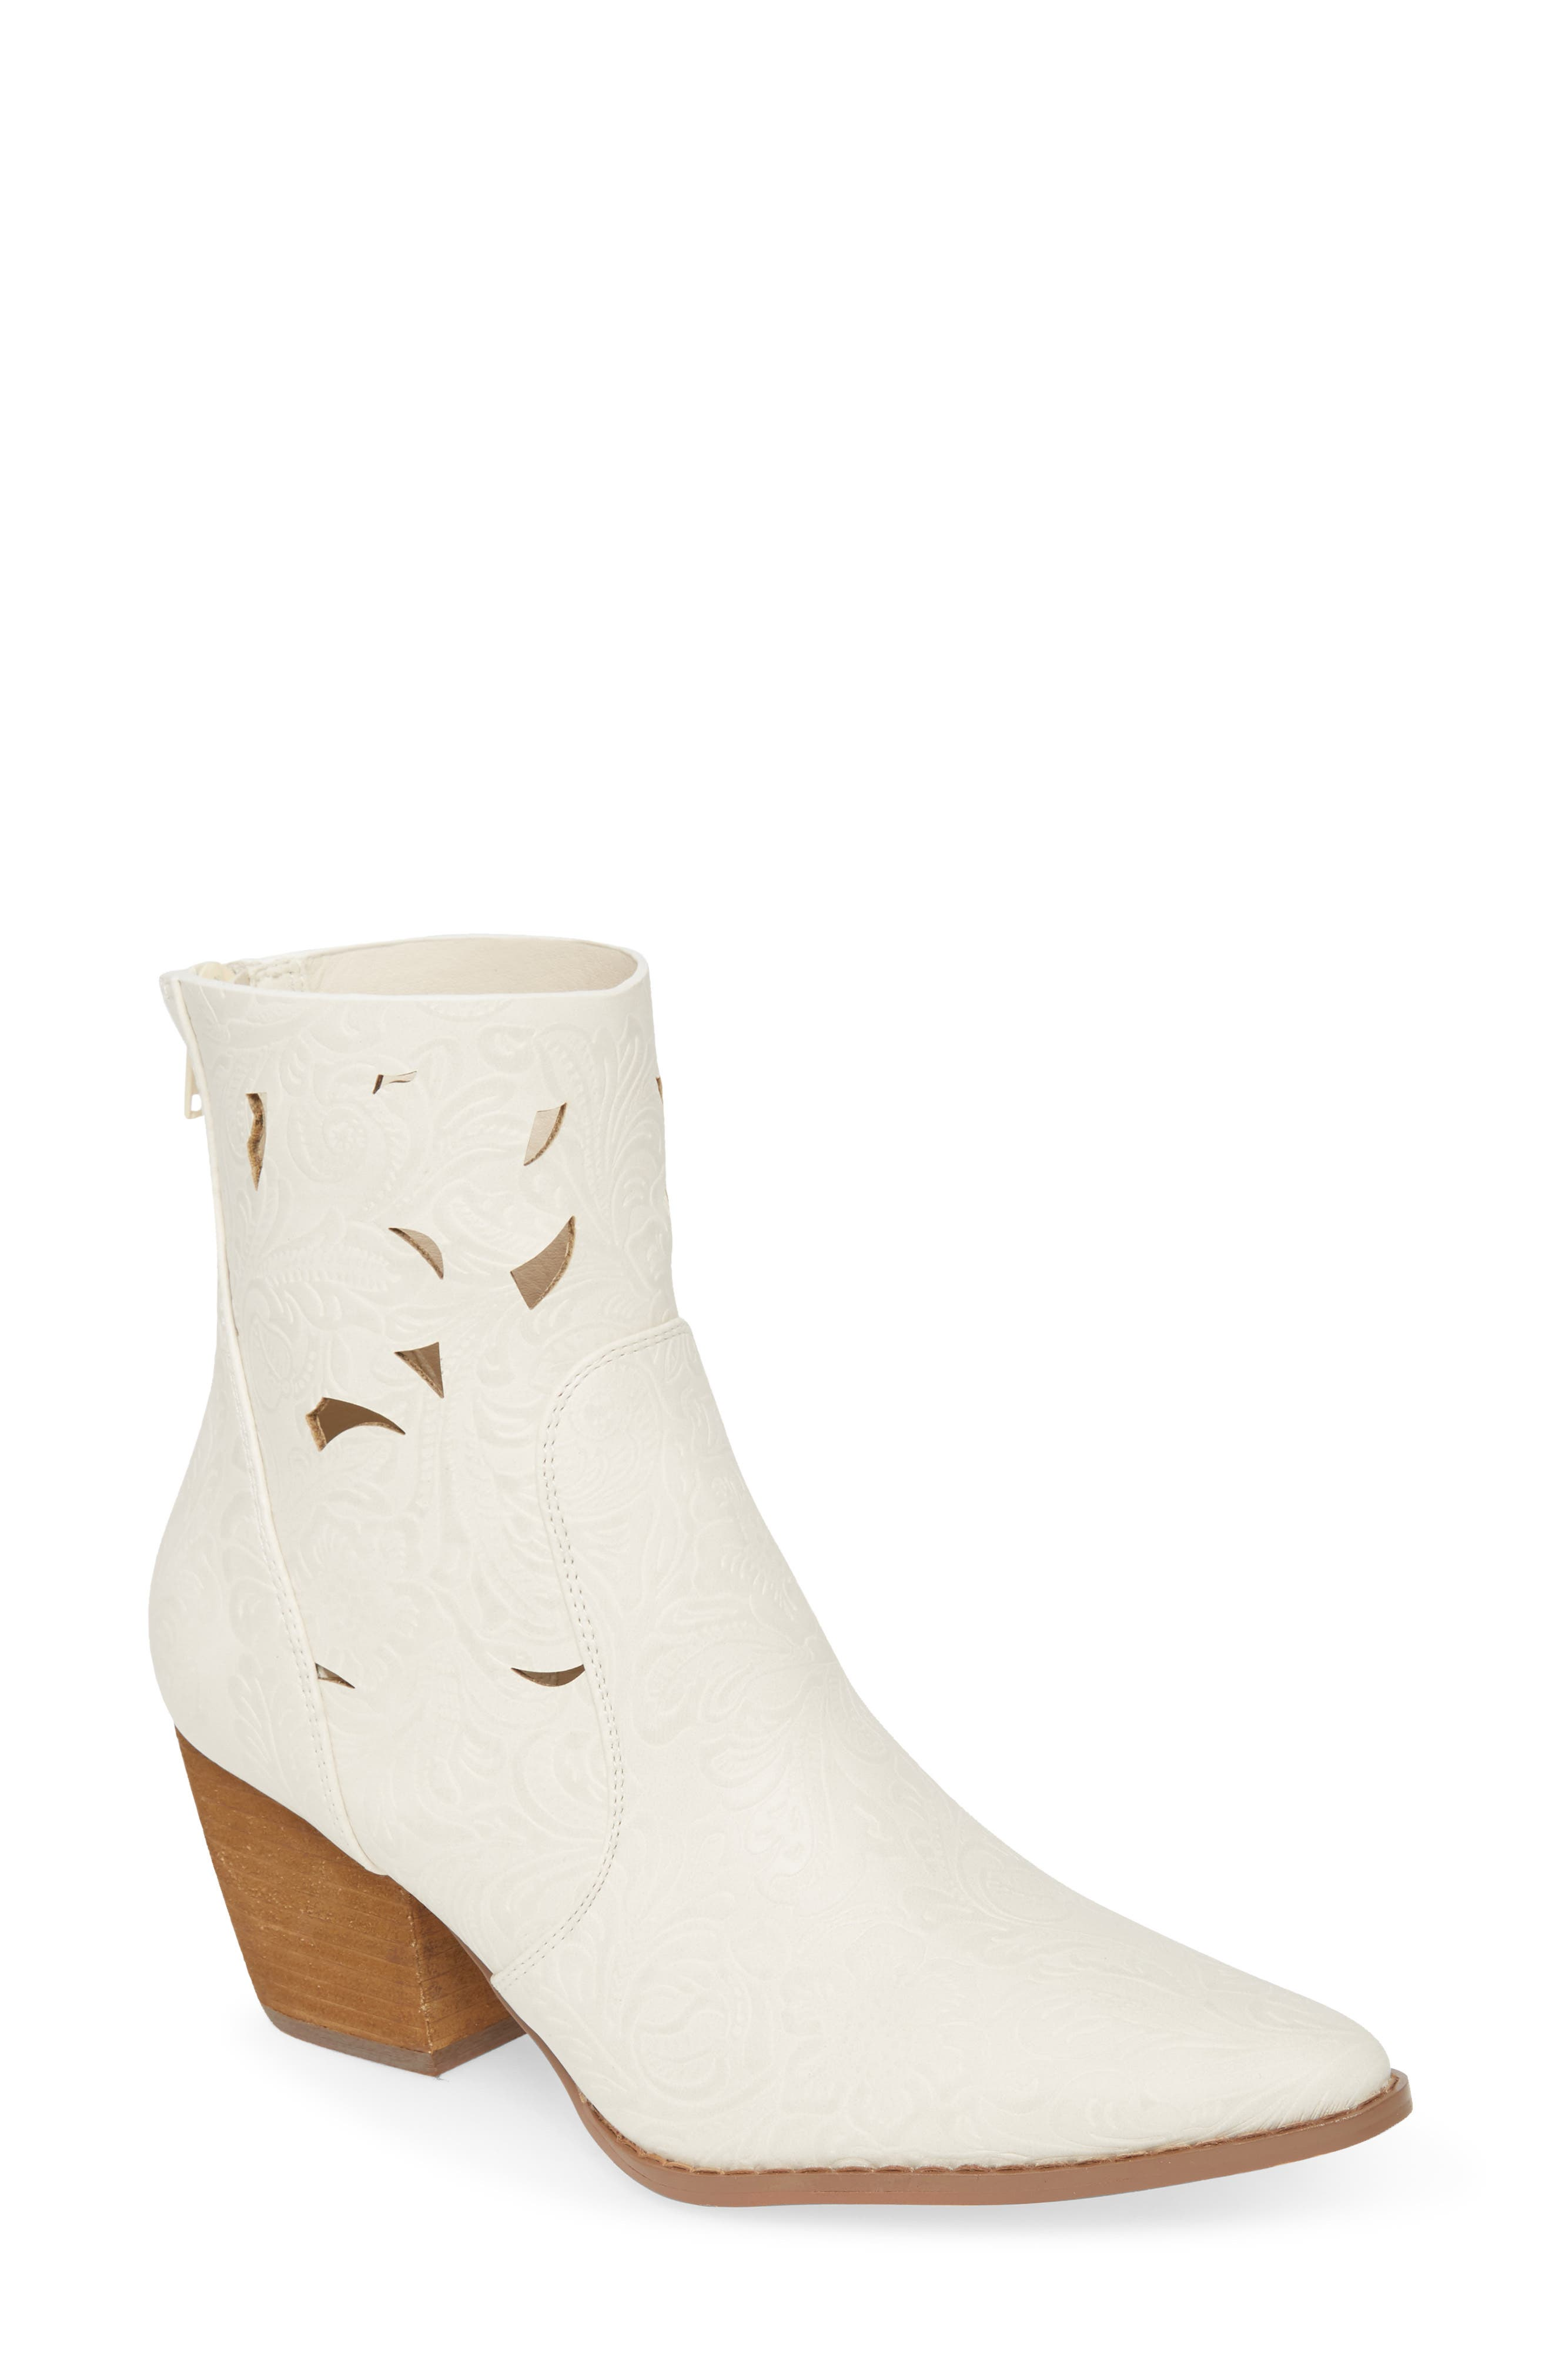 Laser-cut shapes act like flickers of light through the dense tooled garden of this pointy-toe Western-inspired bootie. Style Name: Coconuts By Matisse Acacia Laser Cut Bootie (Women). Style Number: 5951685. Available in stores.